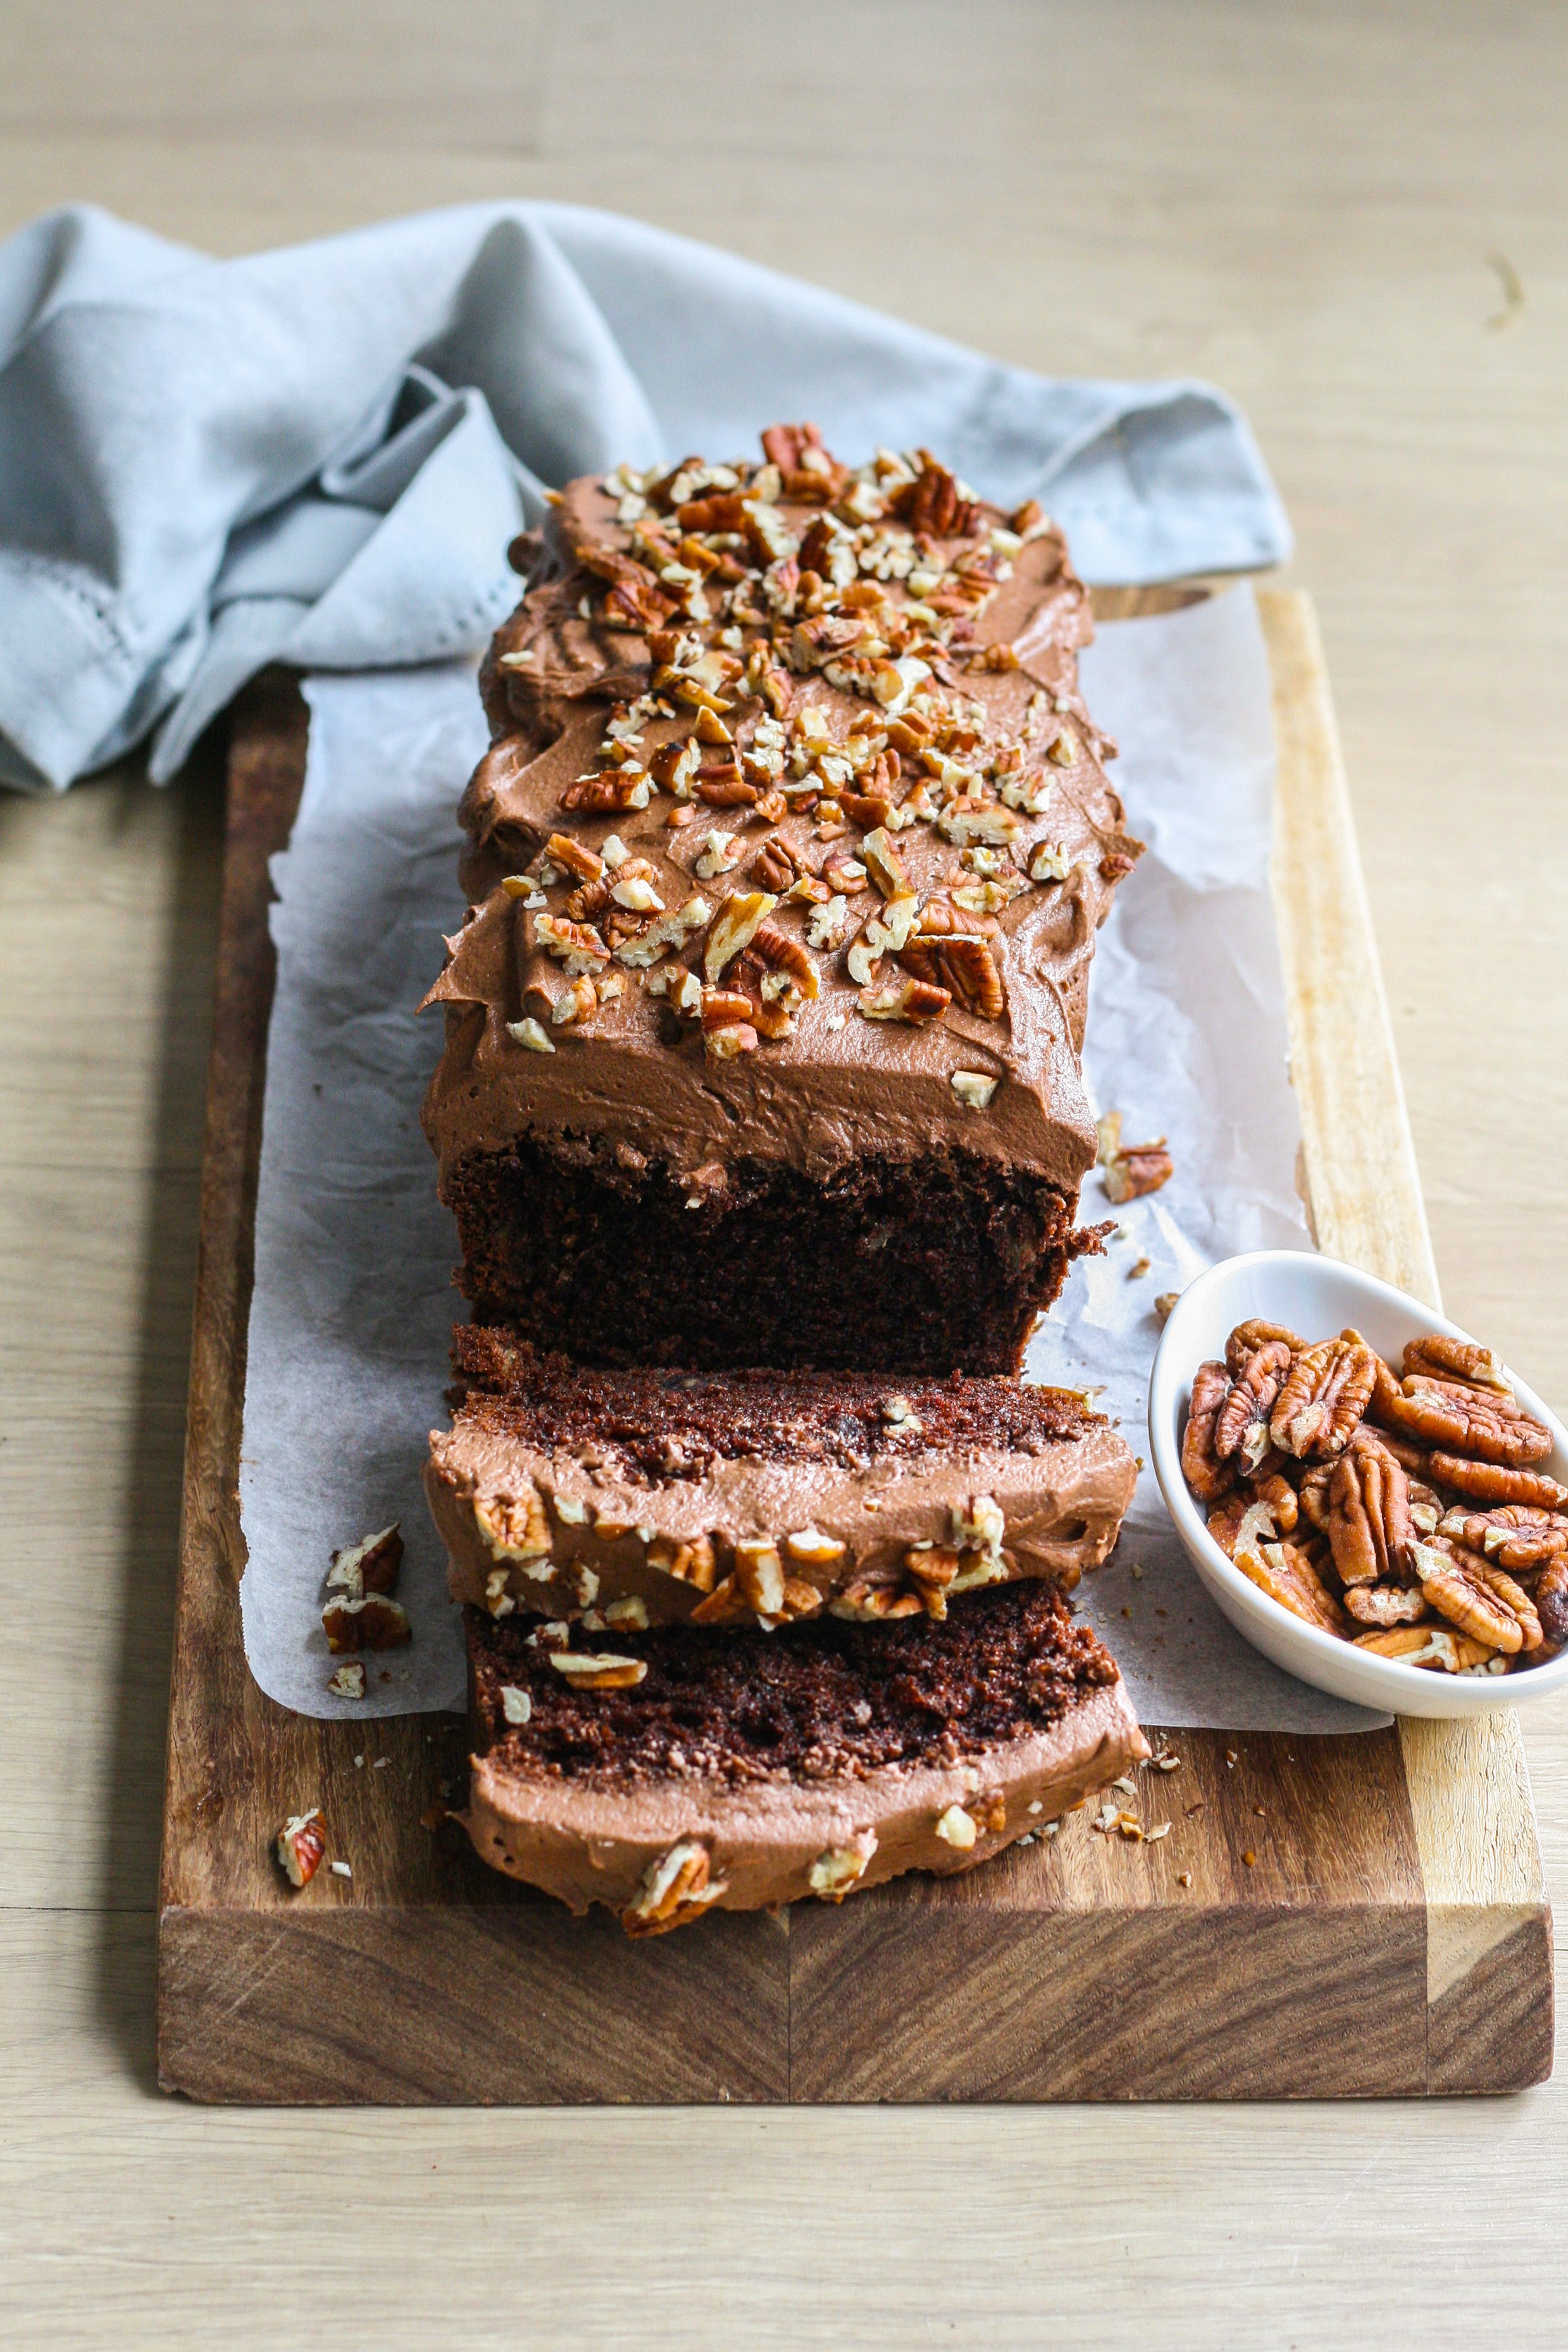 Chocolate and pecan tea loaf cake